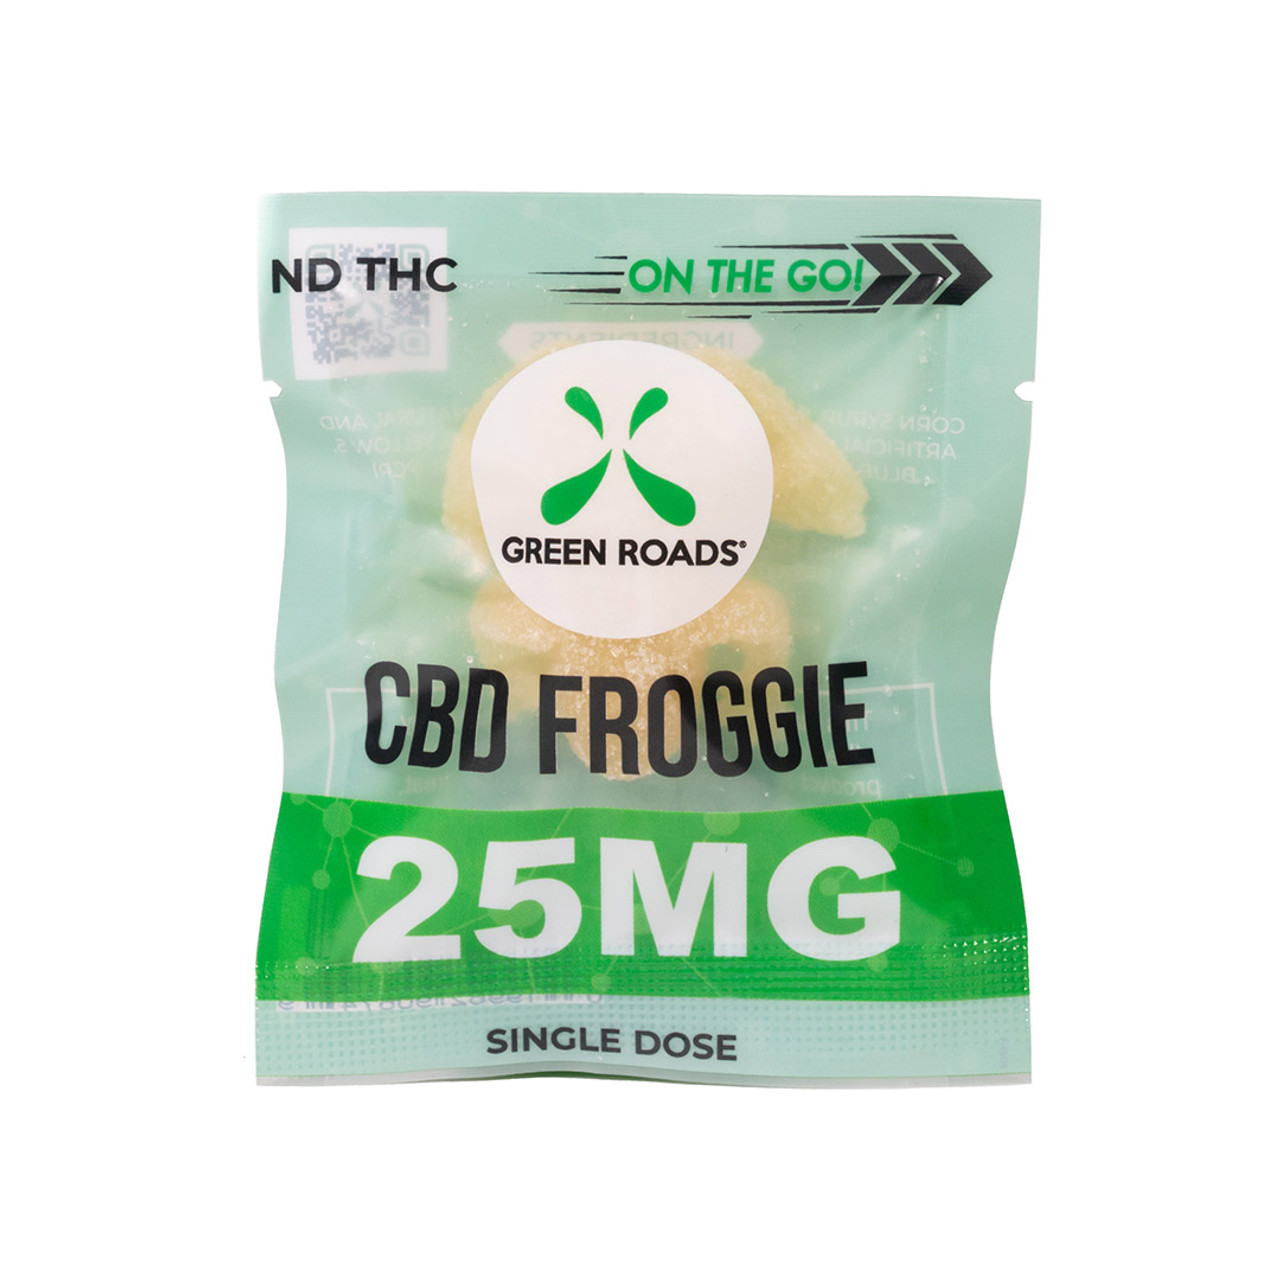 The CBD Froggies, Green Roads' flagship edible product, are an industry classic. Lucky for everyone, pharmacist-formulated 25 mg CBD Froggies are now available in a single dose, ideal for college students, soccer moms, and everyone in between.